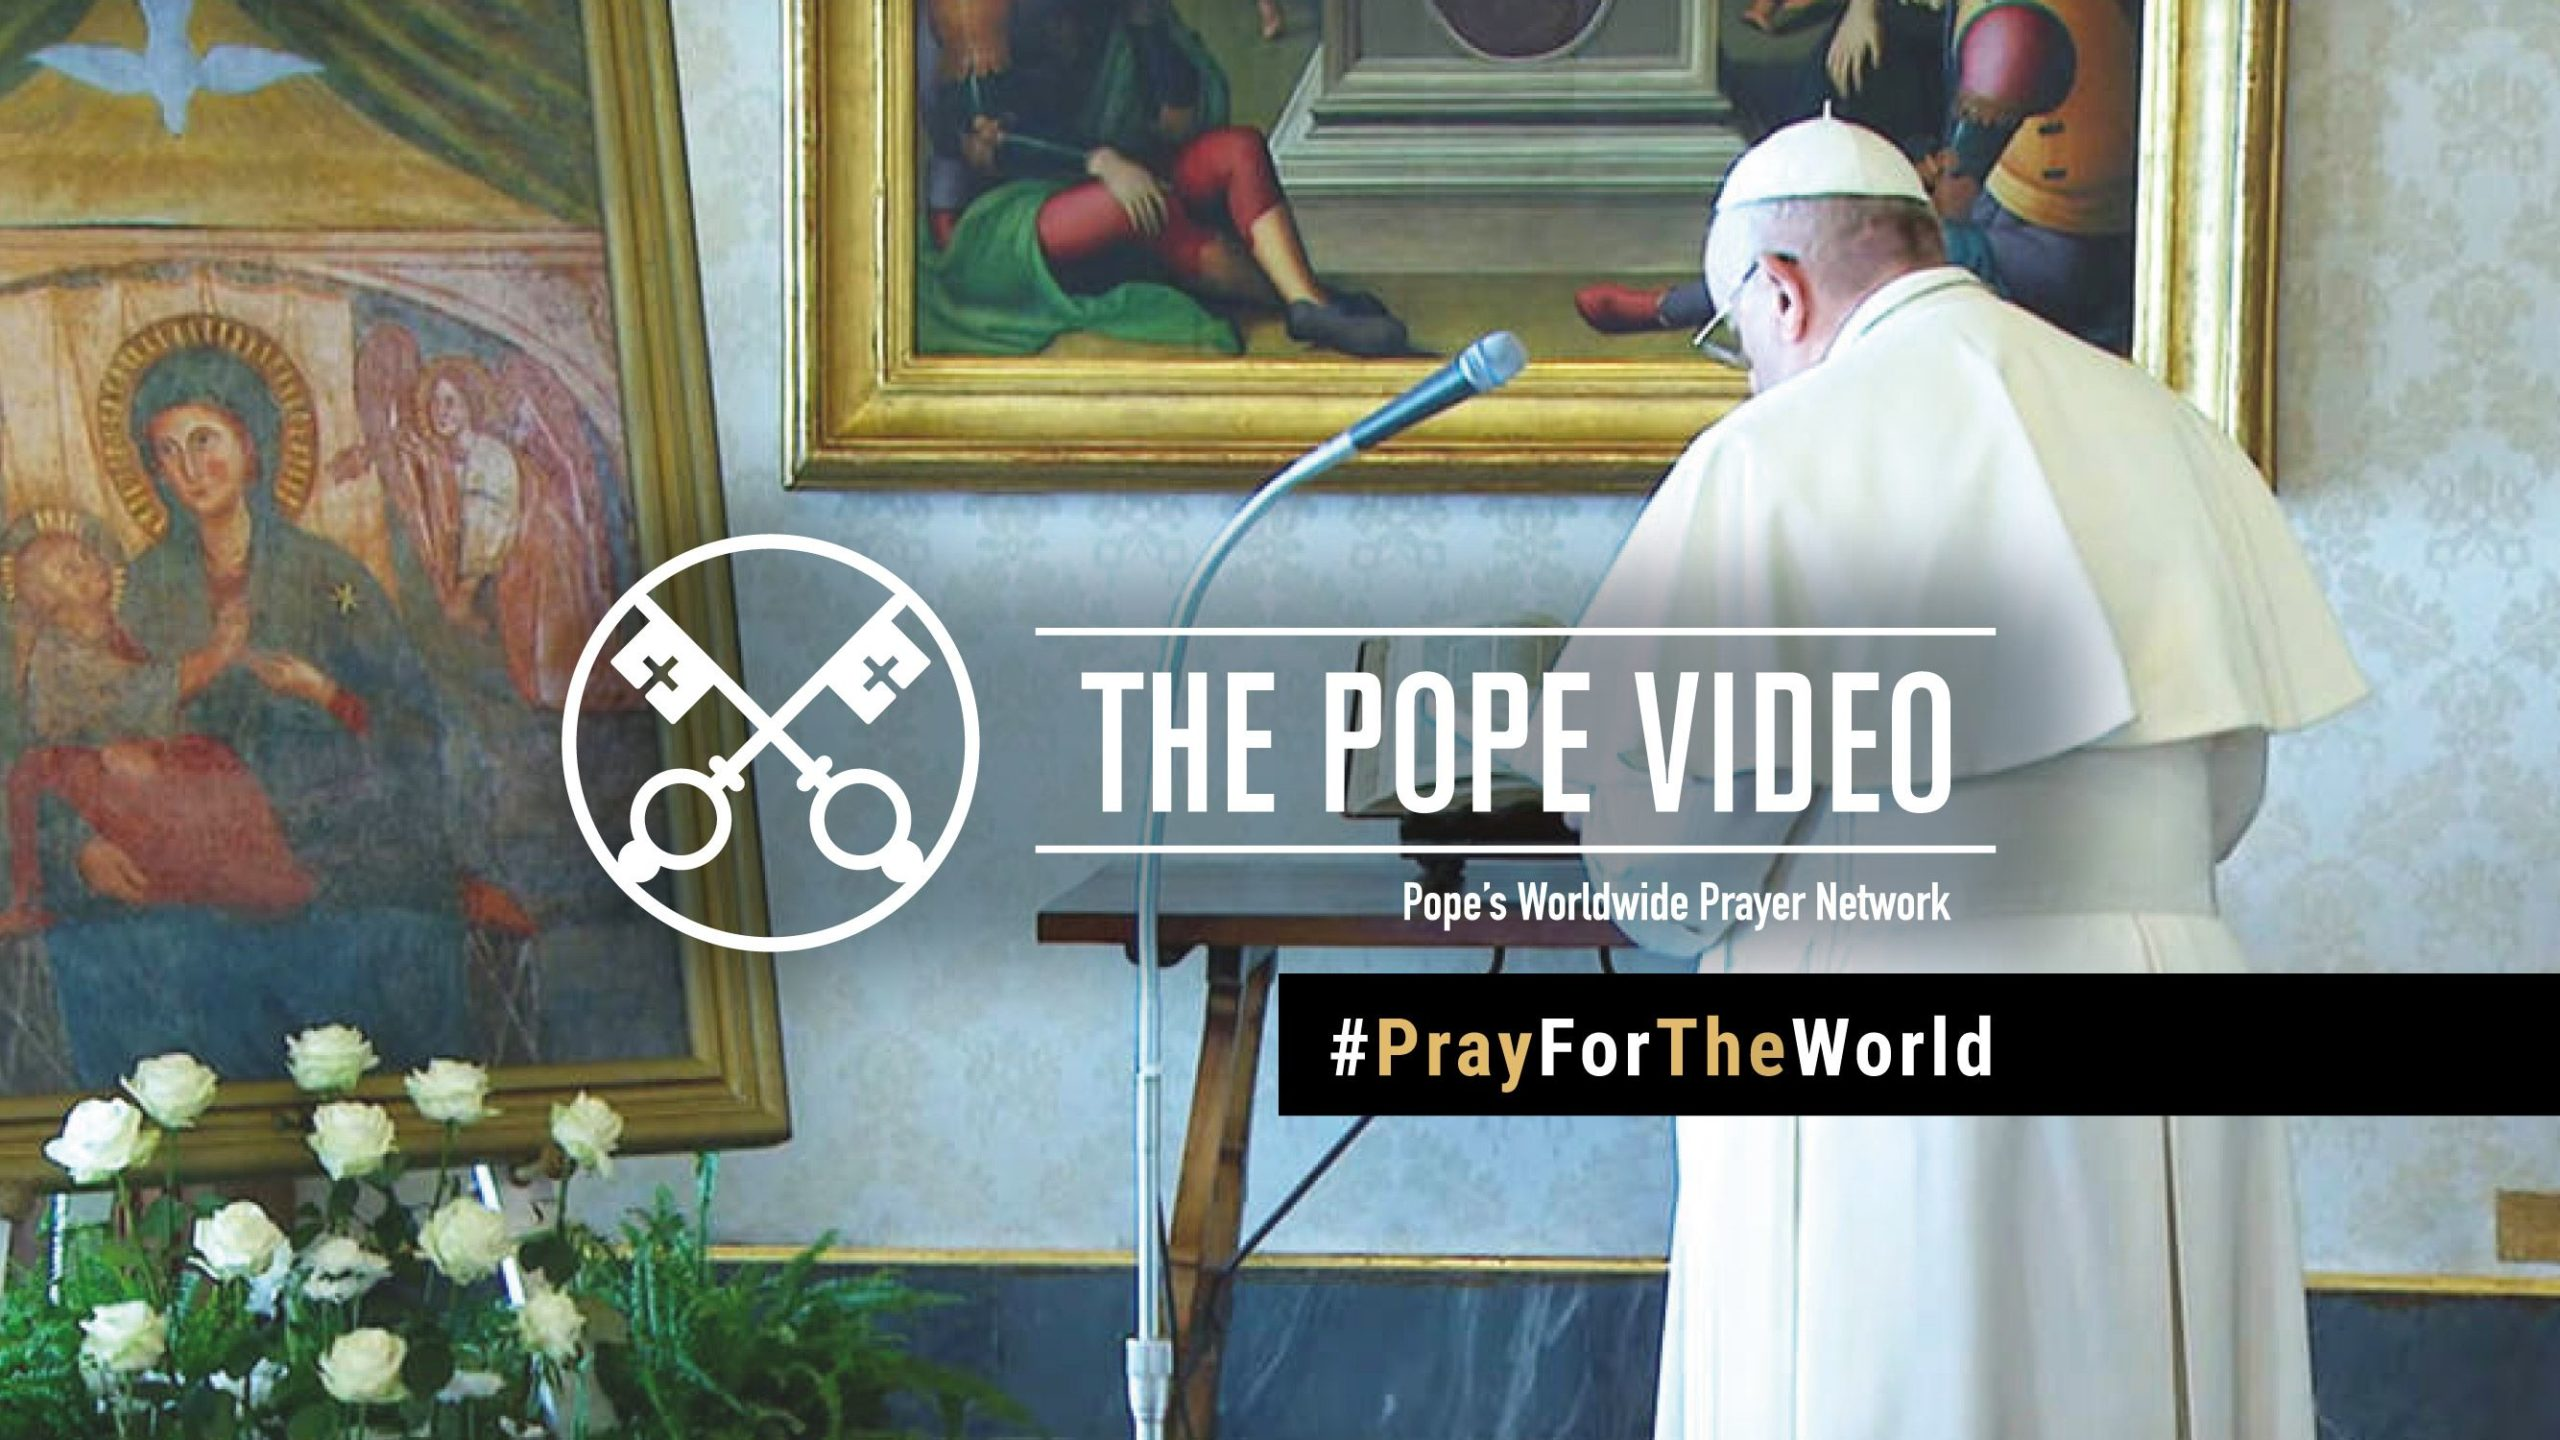 Official-Image-TPV-PFTW-2020-EN-The-Pope-Video-PrayForTheWorld-scaled